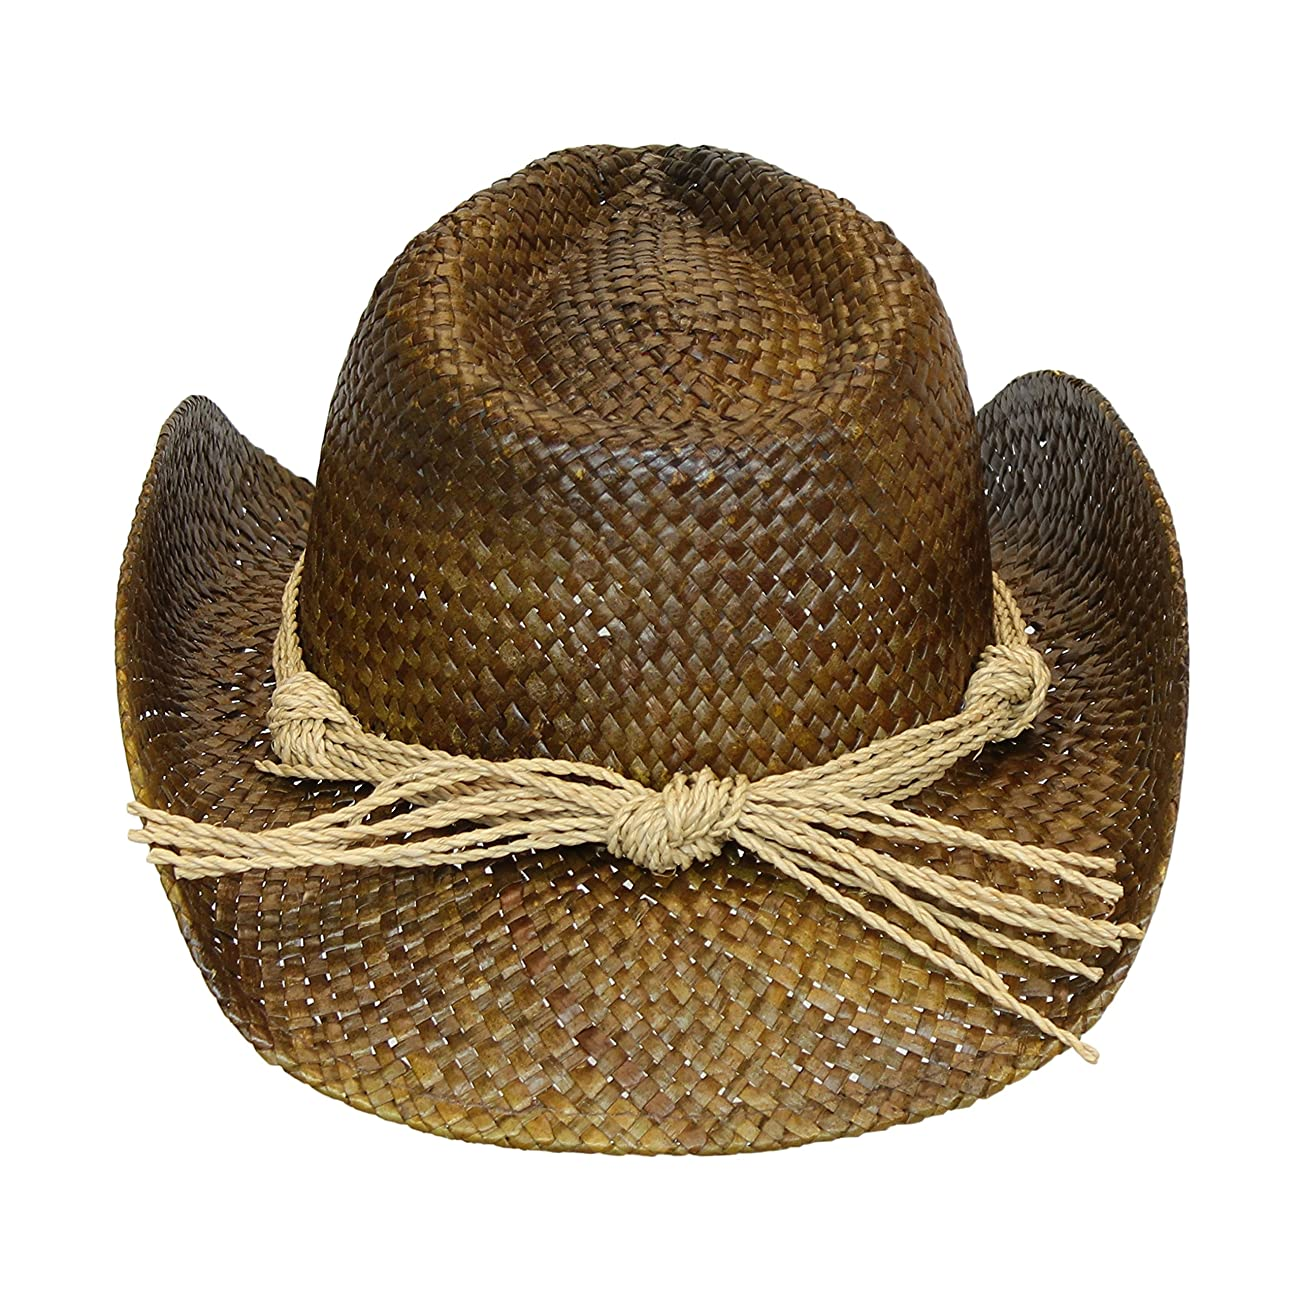 Western Seagrass Straw Cowboy Hat – Cute Vintage Cowgirl Hat w/ Flower 3